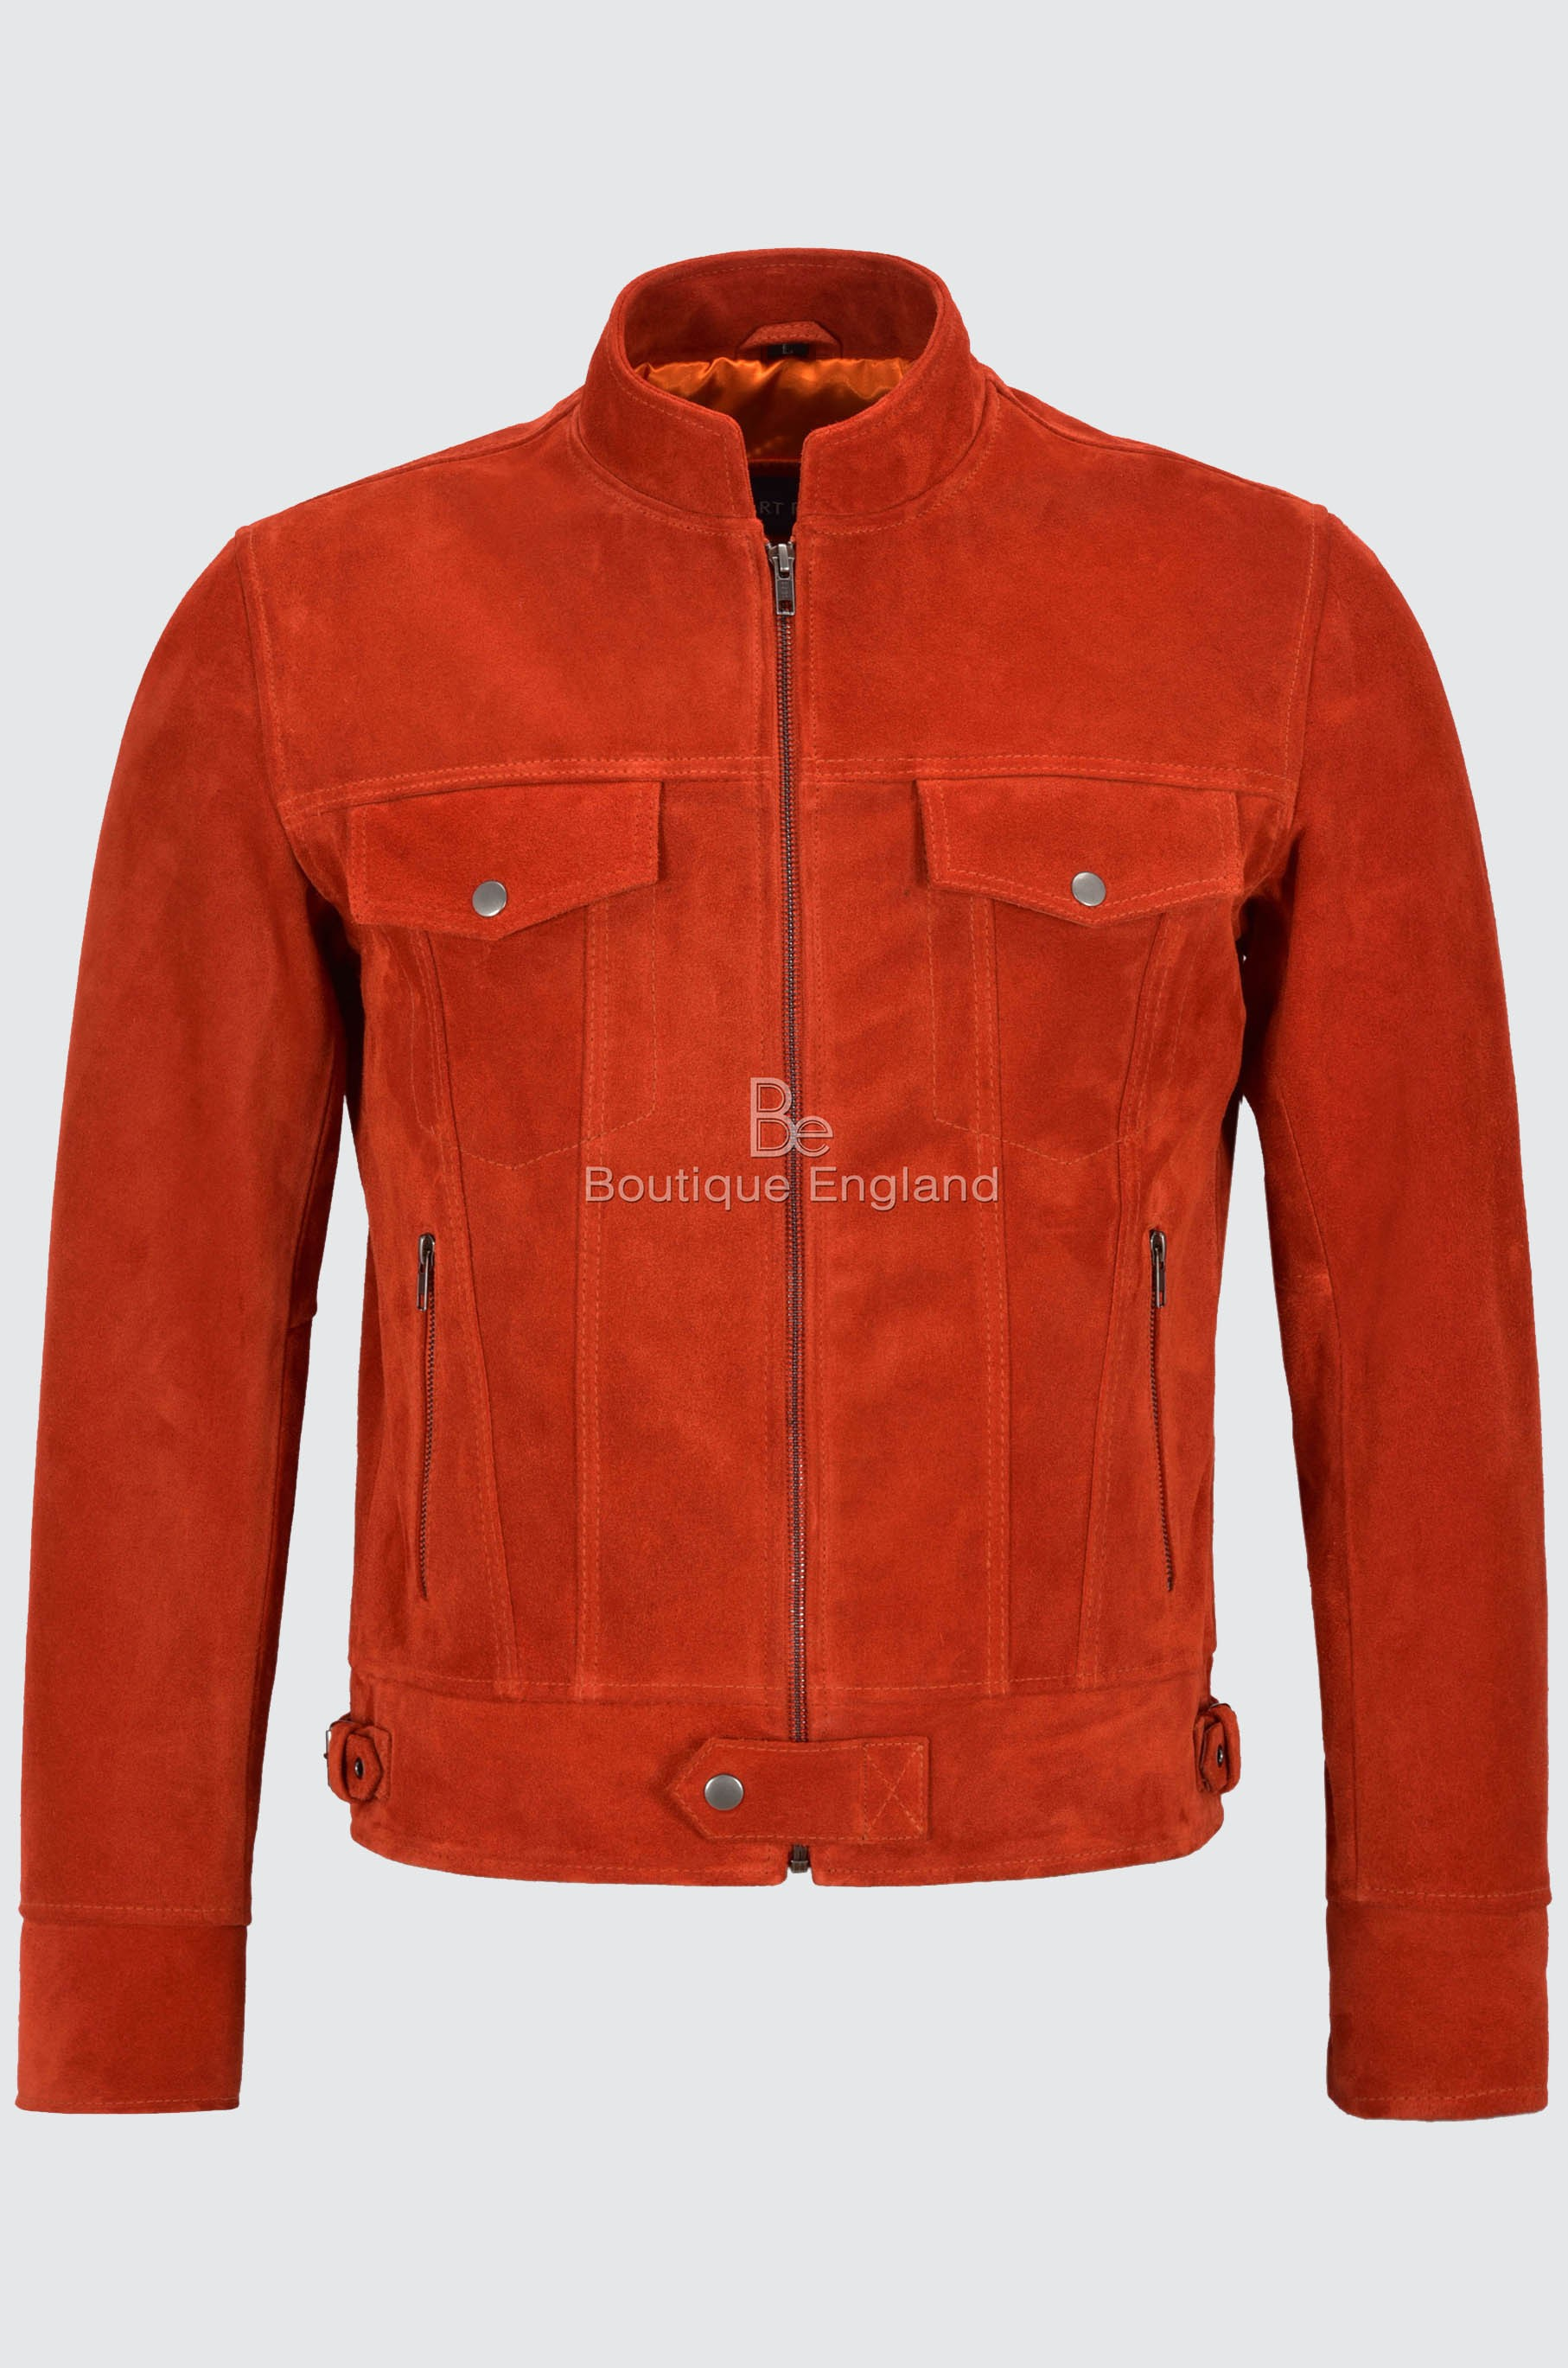 Men's TRUCKER Leather Suede Jacket Orange Classic SOFT Biker Motorcycle Style Real Hide 1345